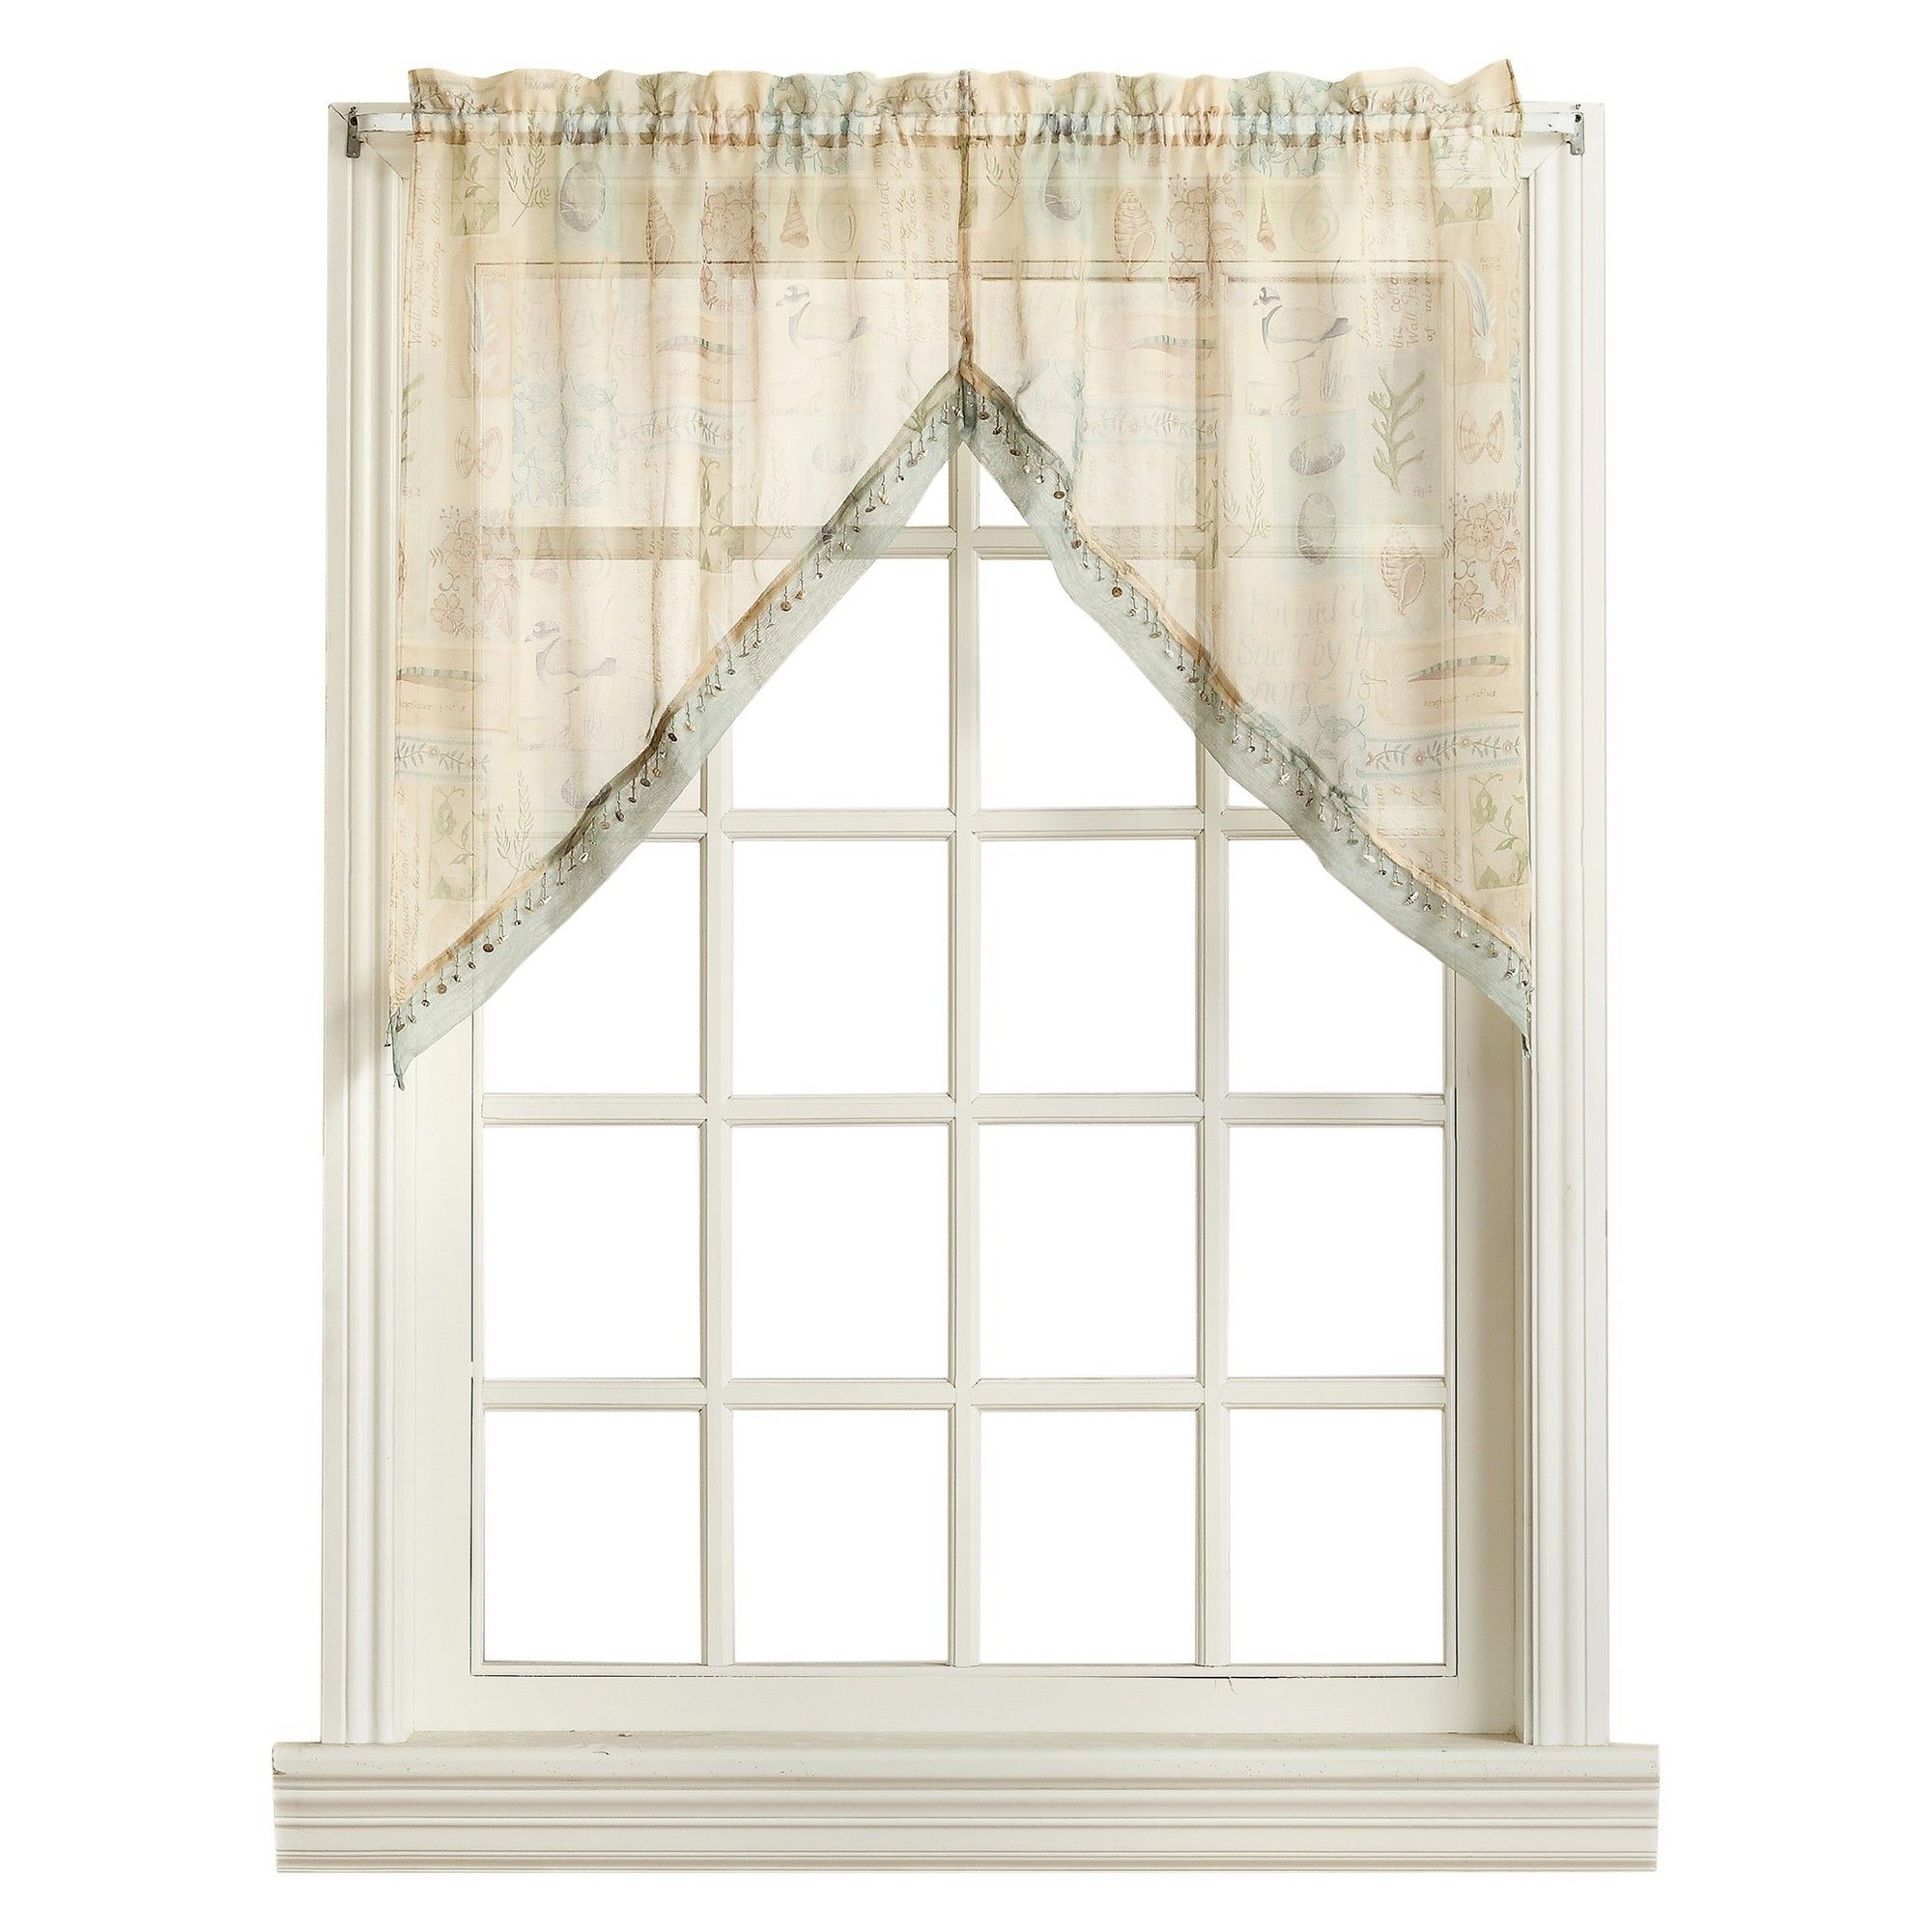 Seascape kitchen curtain swag pair offwhite ocean